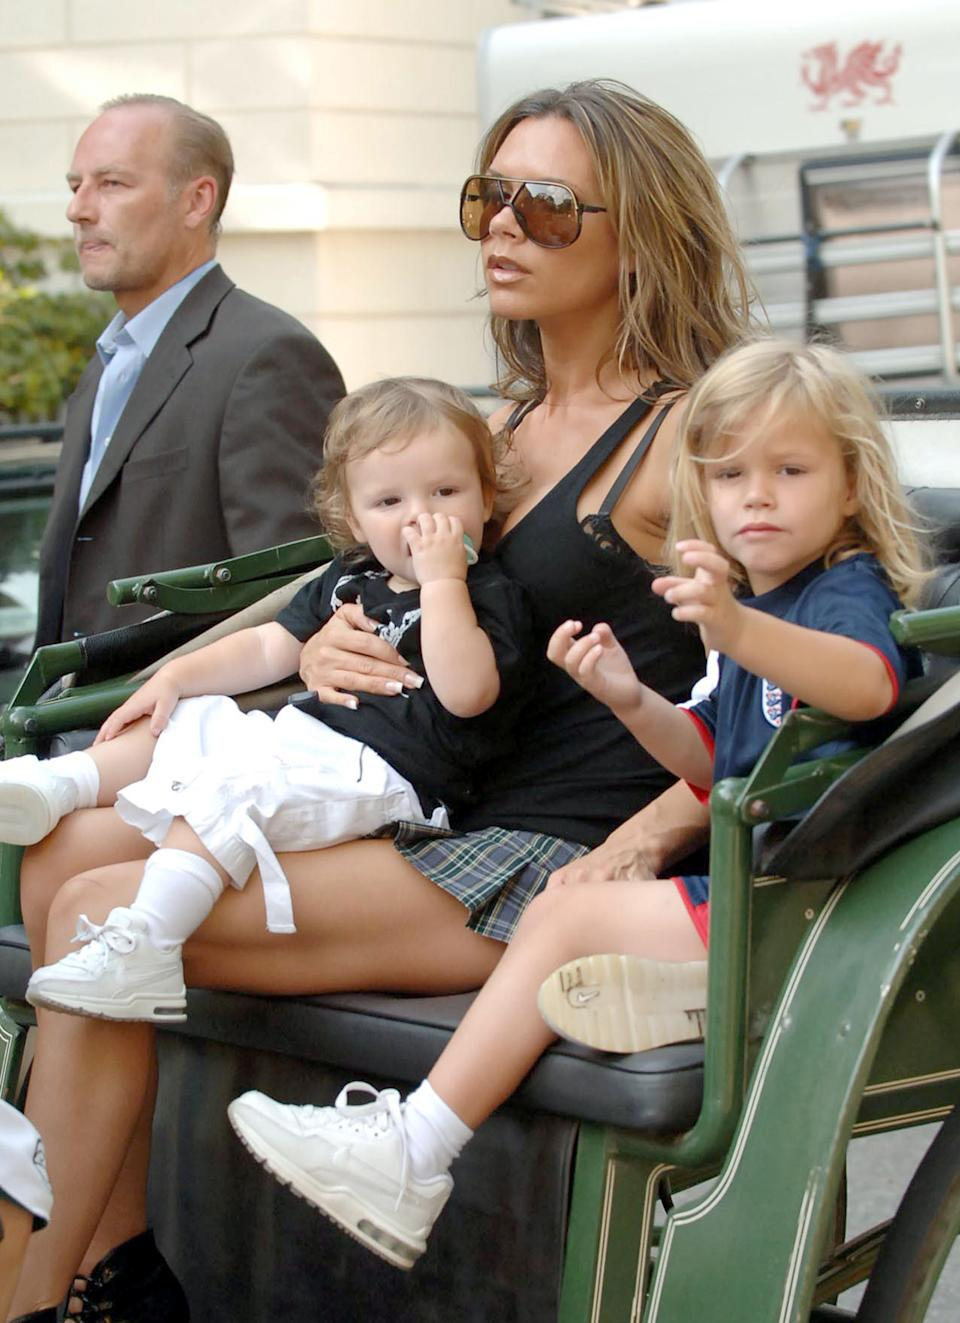 Victoria Beckham brought her three sons along to Baden Baden for the 2006 World Cup [Photo: Getty]